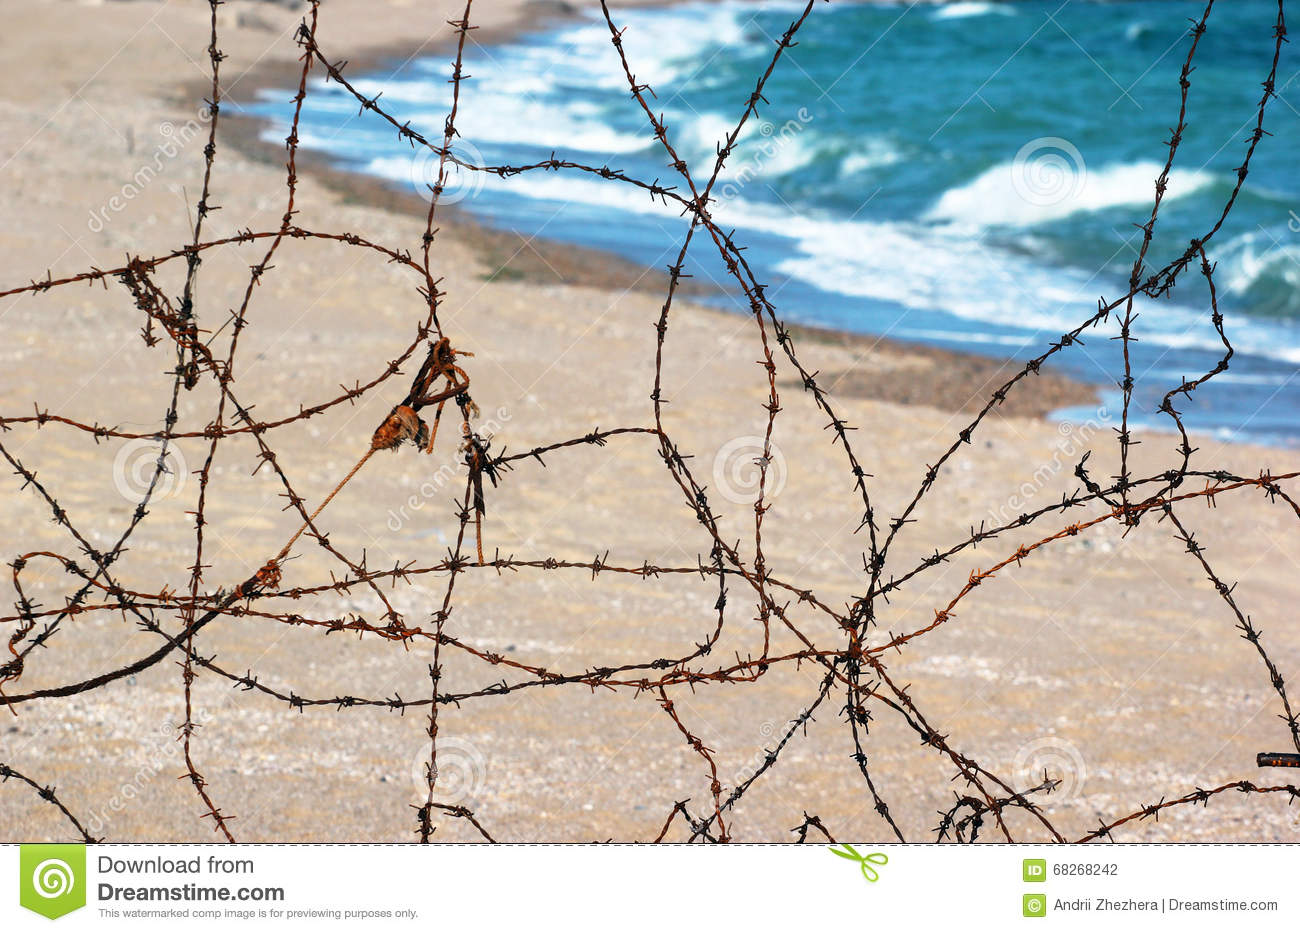 Old rusty barbed wire fence on a beach stock photo image